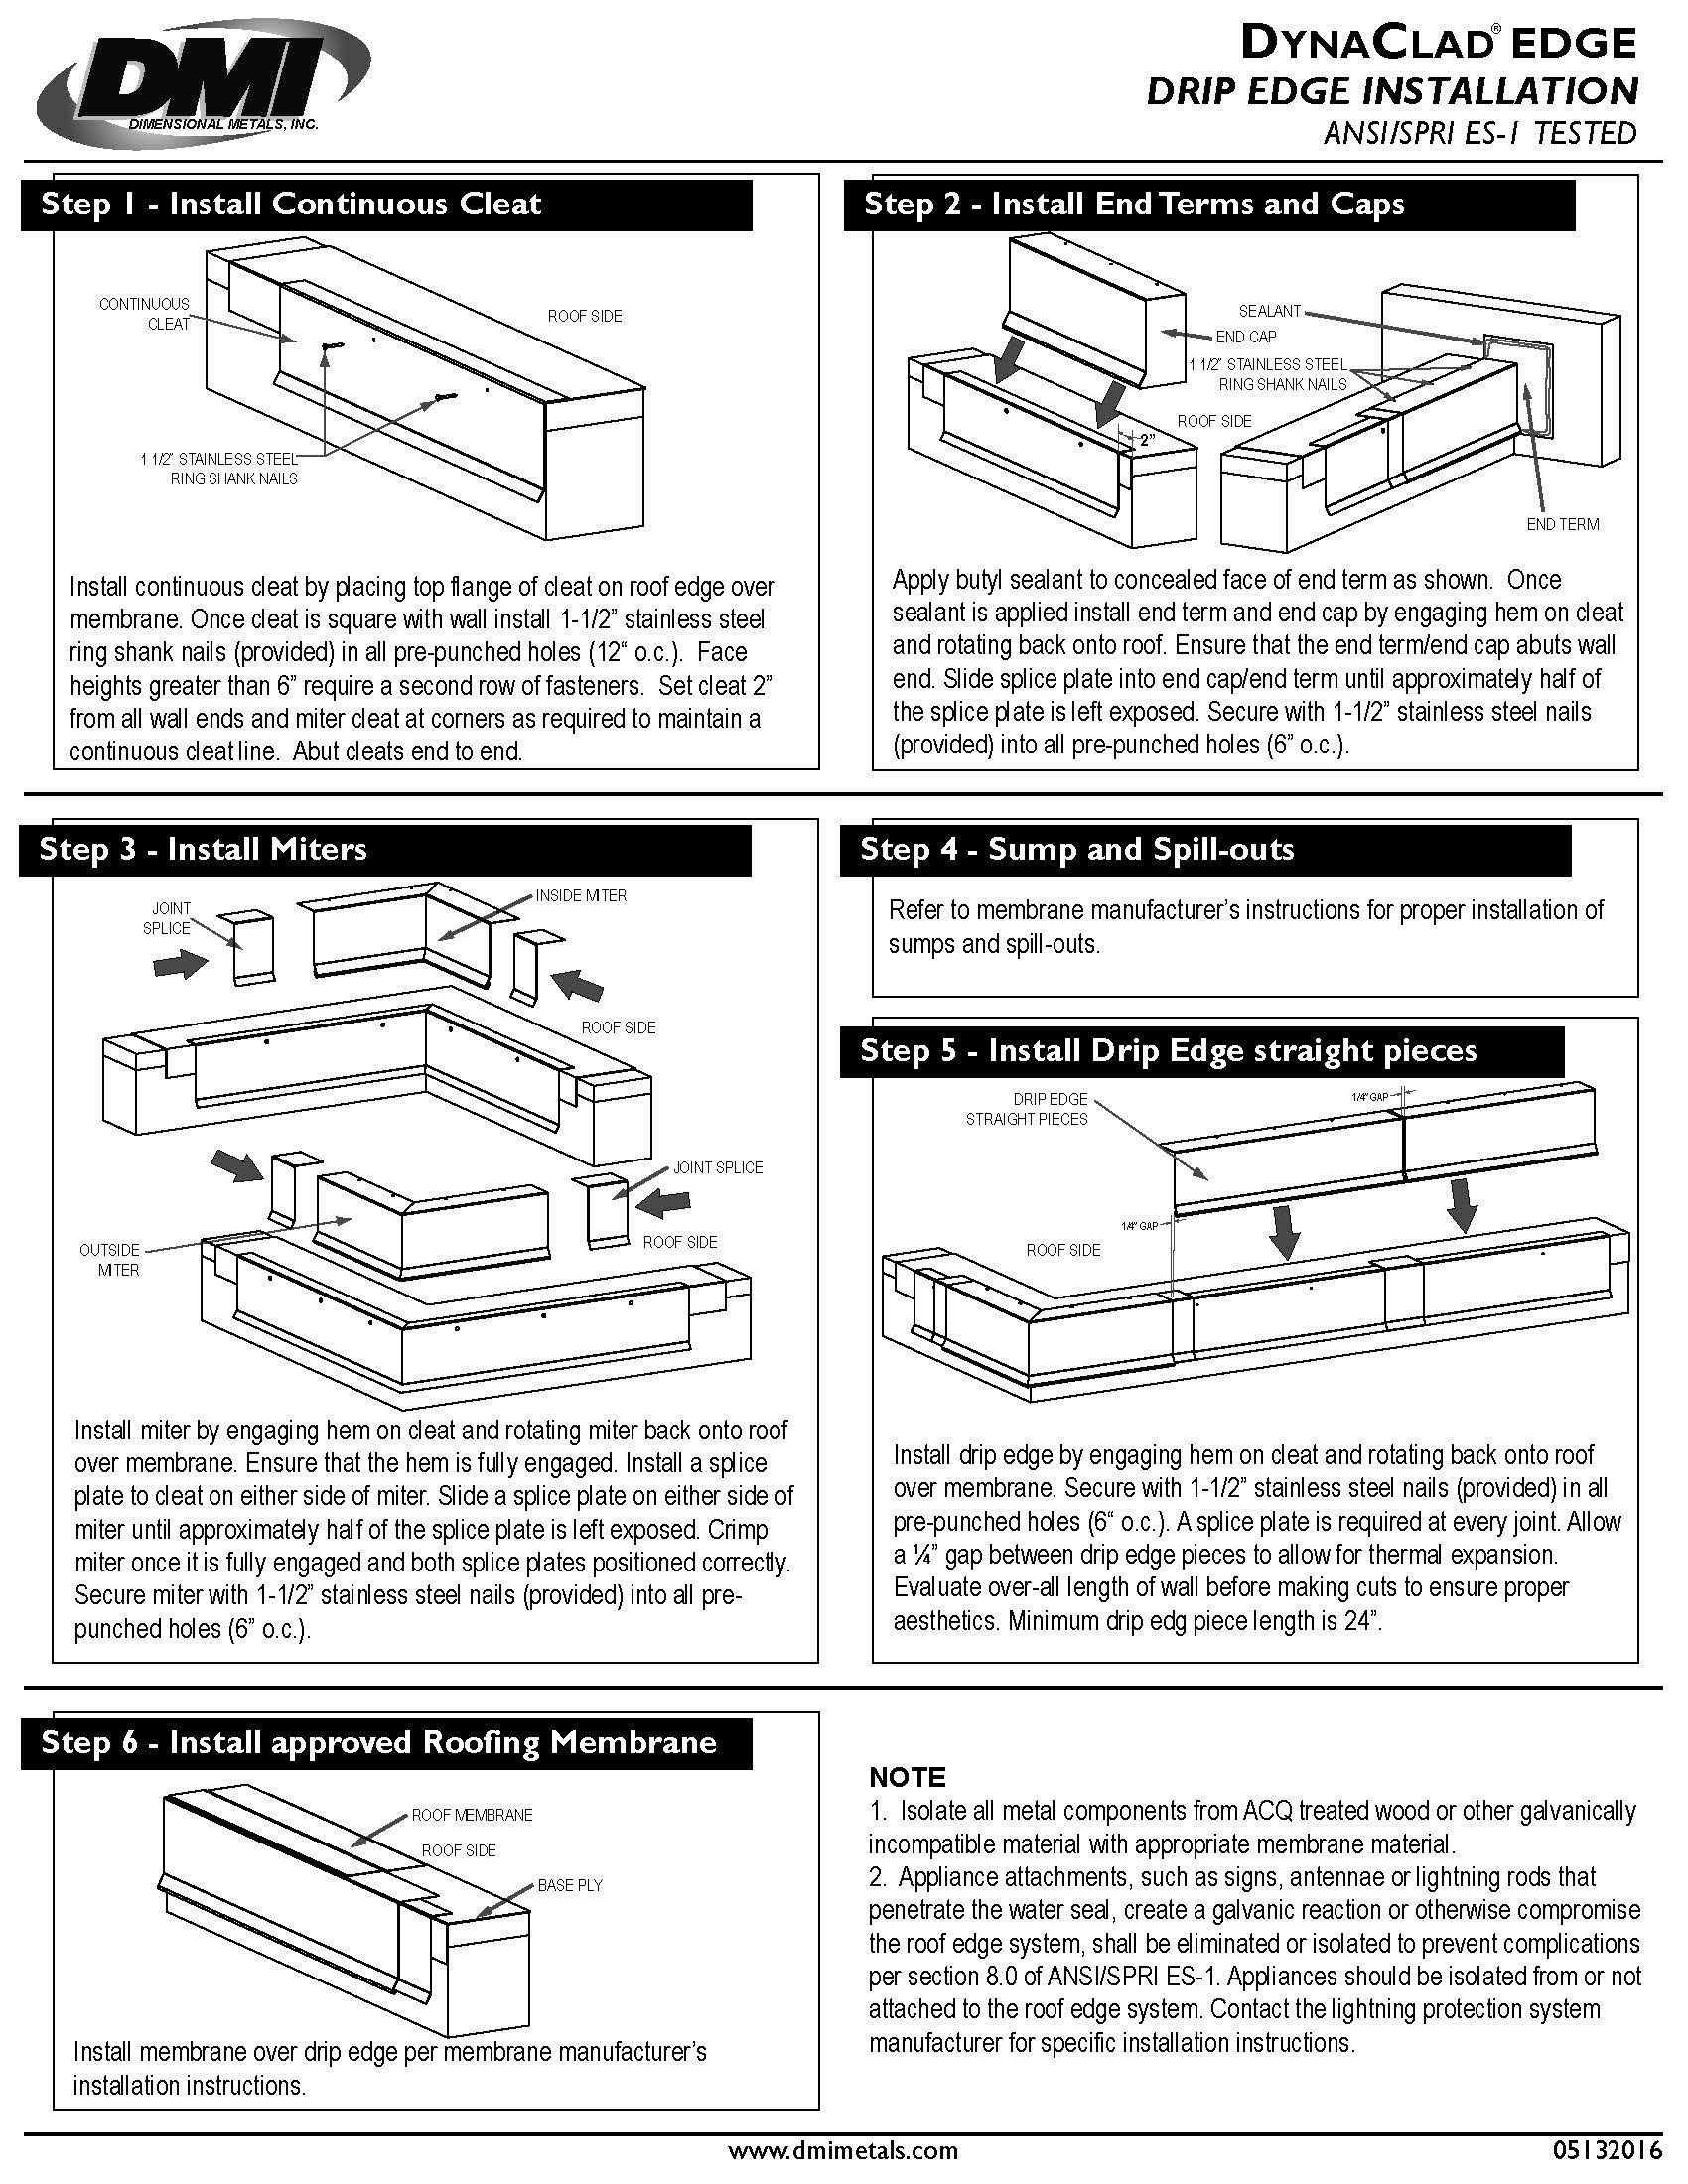 Drip Edge Installation Guide